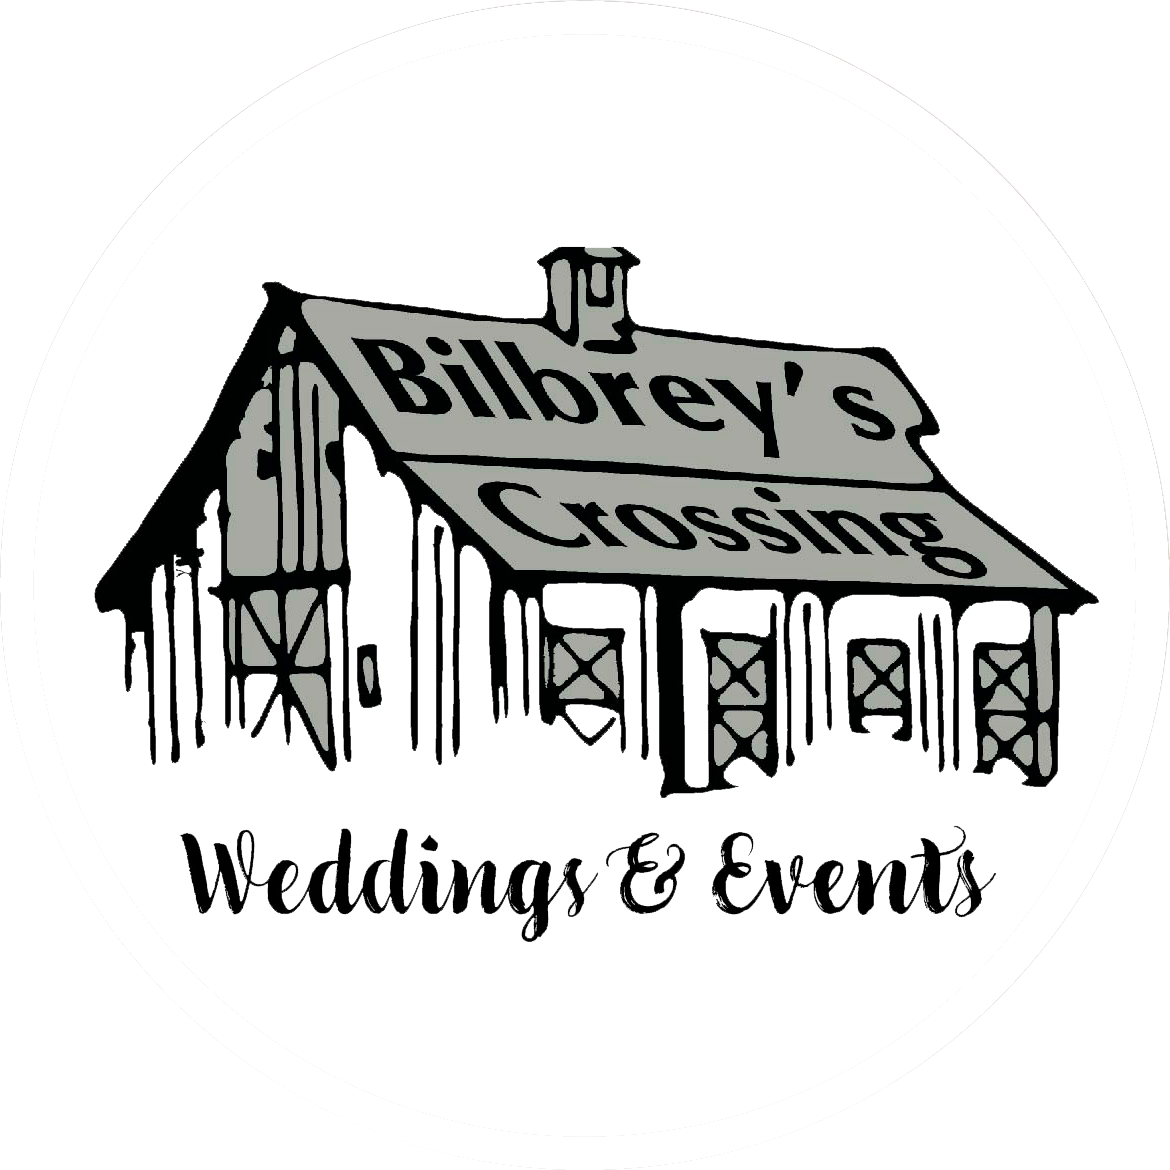 Bilbrey's Crossing